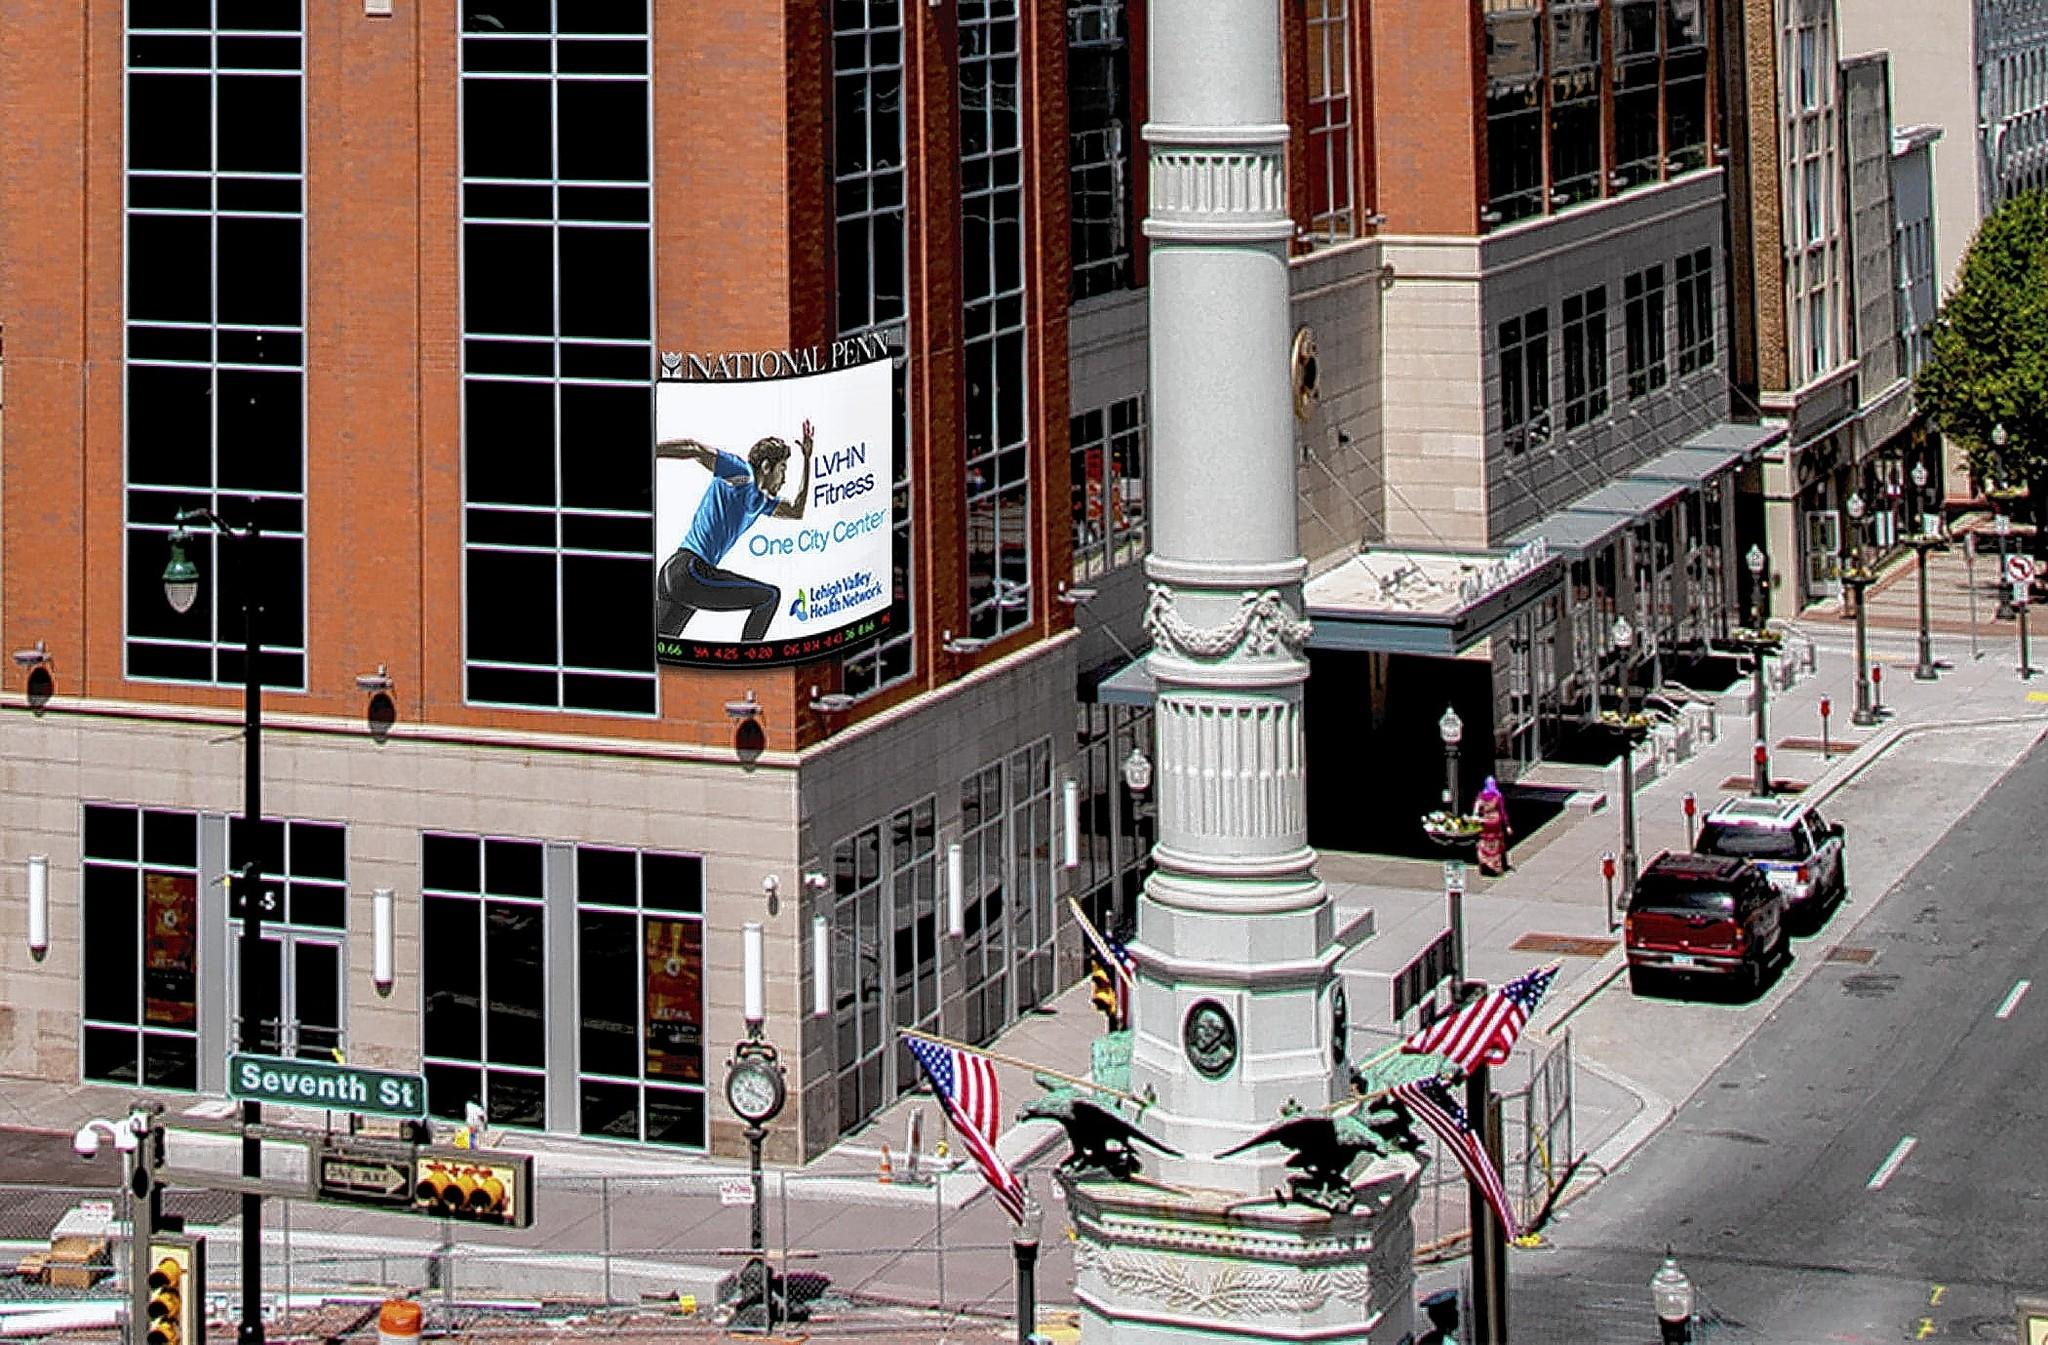 City Center Investment Corp. has proposed a 172-square-foot digital sign at the corner of Seventh and Hamilton streets outside Two City Center.